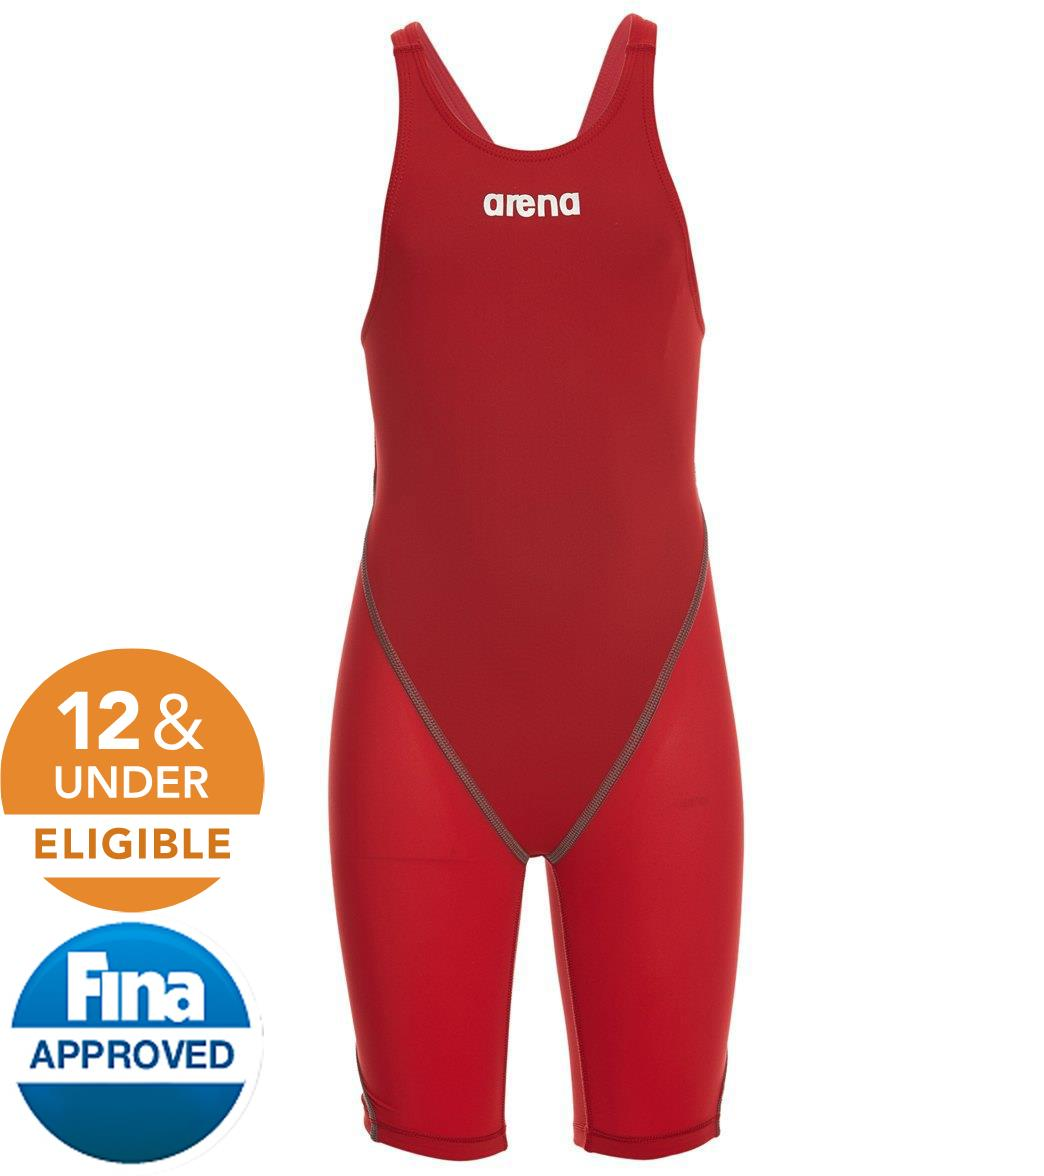 dbb71d21a8 Arena Girls' Powerskin ST 2.0 Open Back Tech Suit Swimsuit at  SwimOutlet.com - Free Shipping